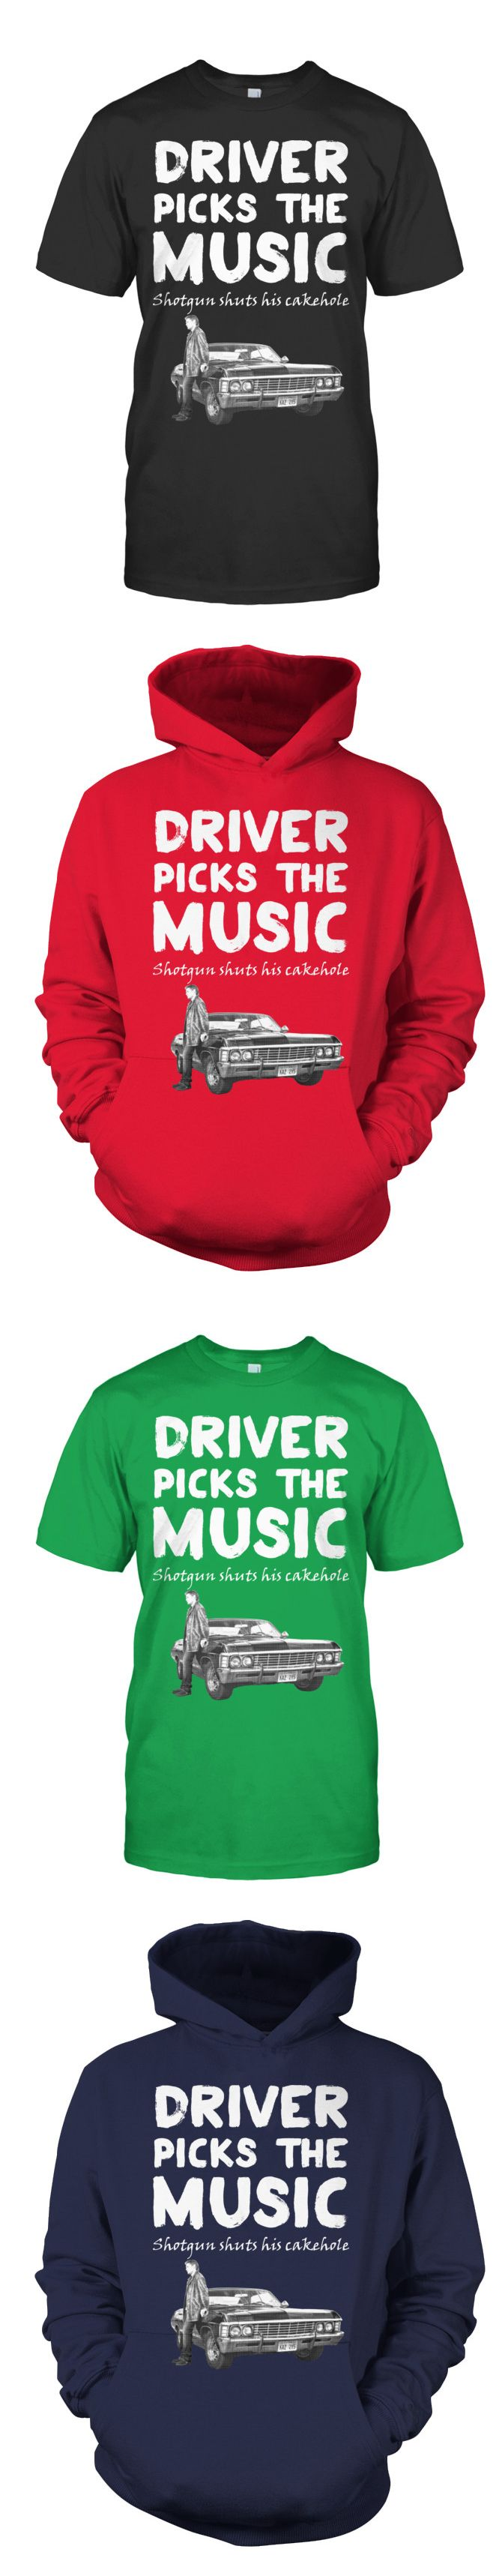 """Awesome """"Driver Picks The Music - Shotgun Shuts his Cakehole"""" Supernatural shirt! I LOVE it! From: https://teechip.com/driversuper  Famous quote from Dean Winchester to Sam Winchester! Awesome!  Carry on my wayward son!"""